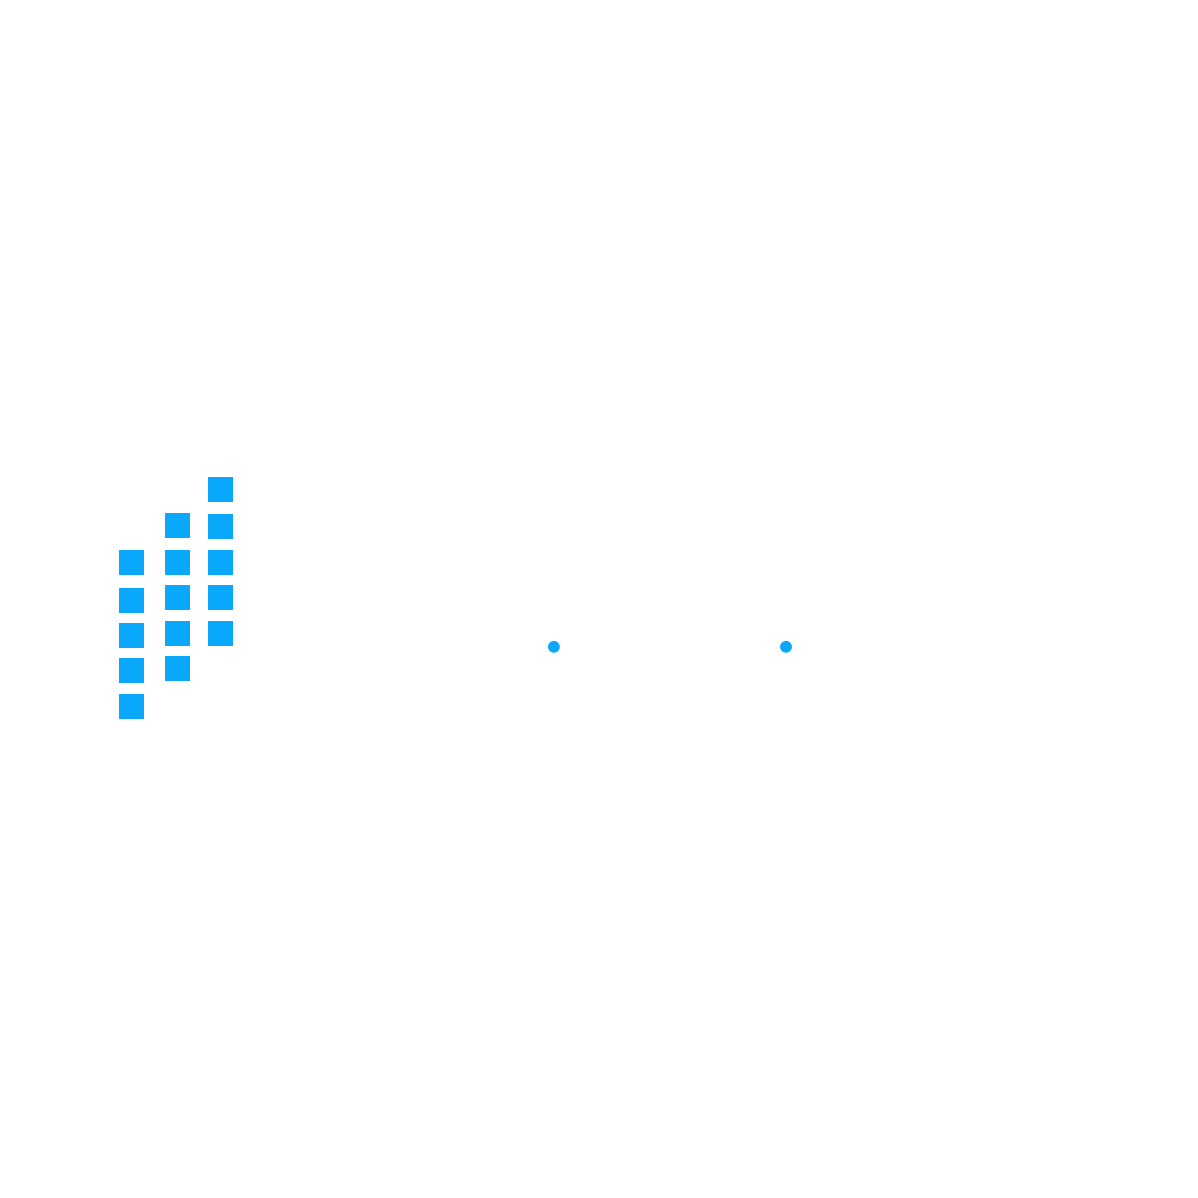 Triad of Excellence for BALC